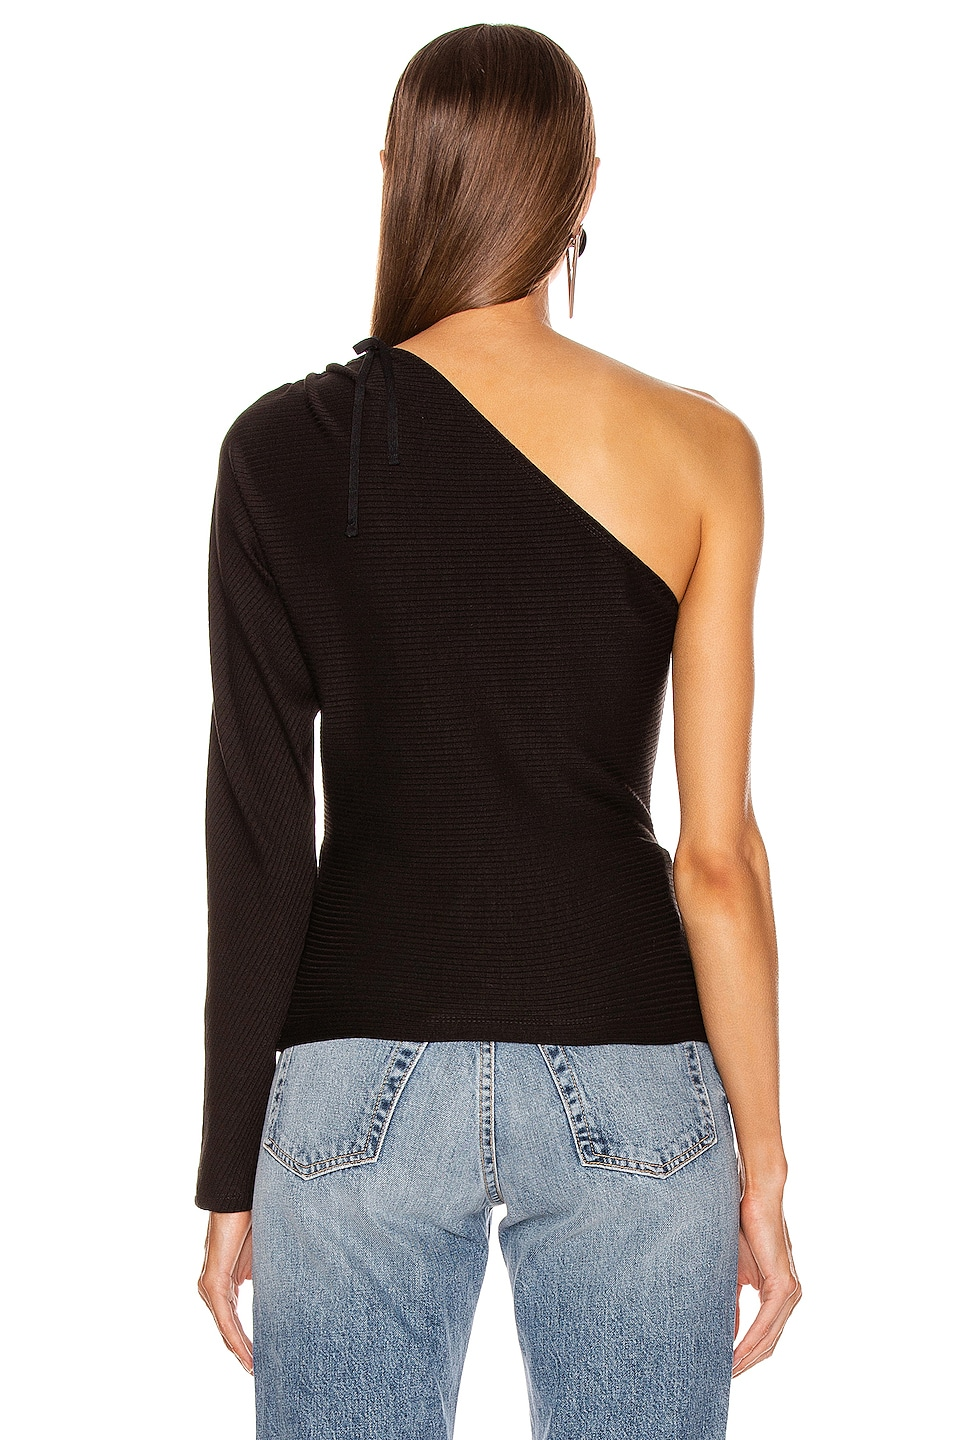 Image 4 of The Range Alloy Rib One Shoulder Top in Black